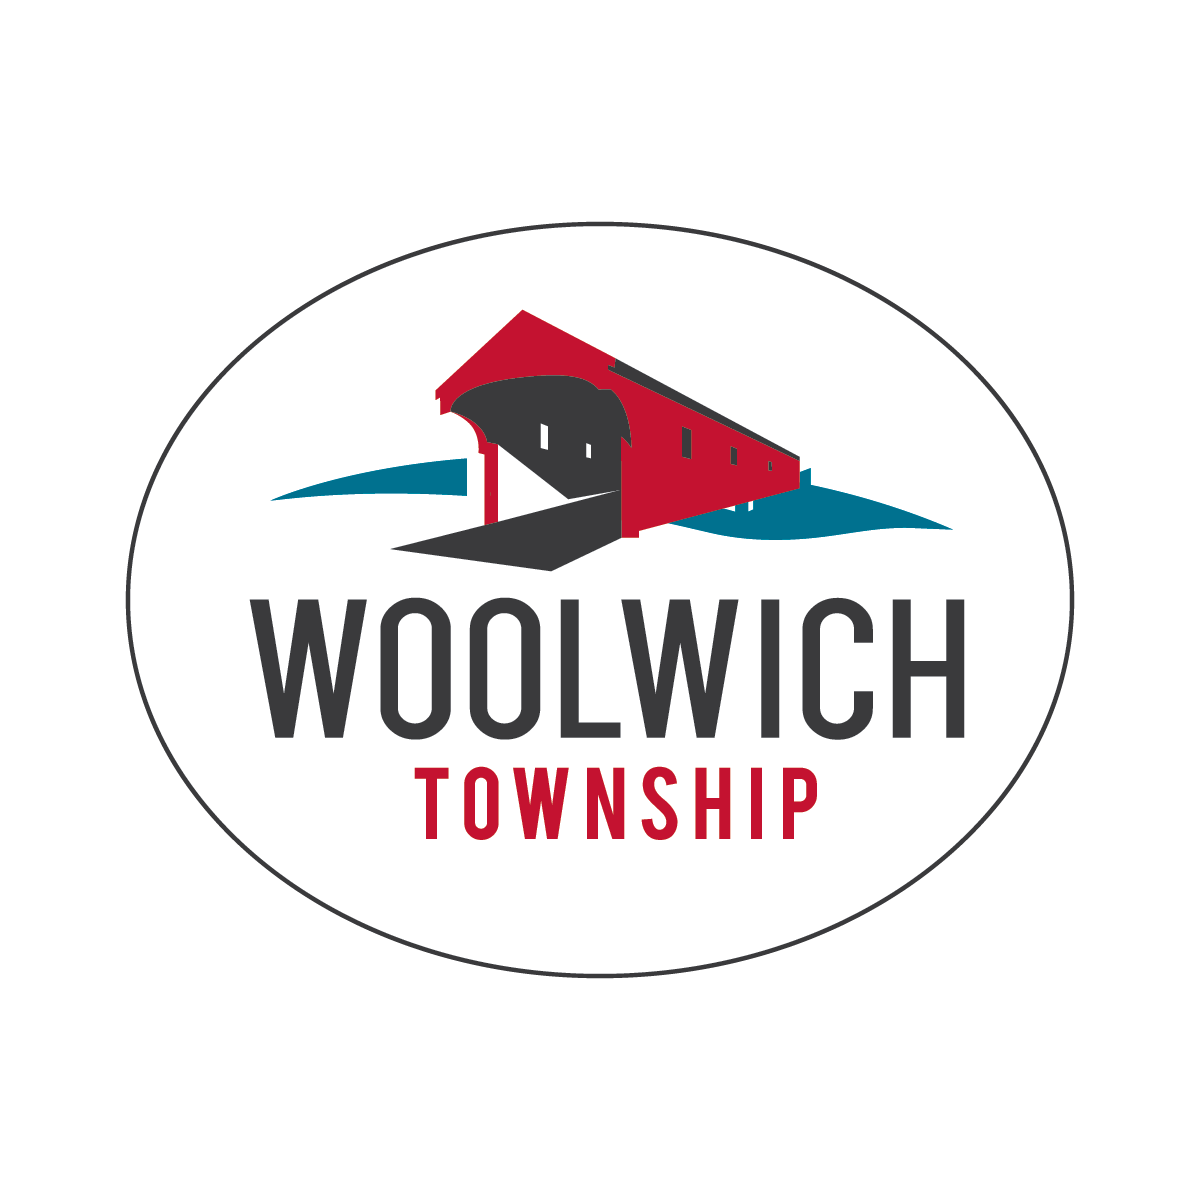 Township of Woolwich